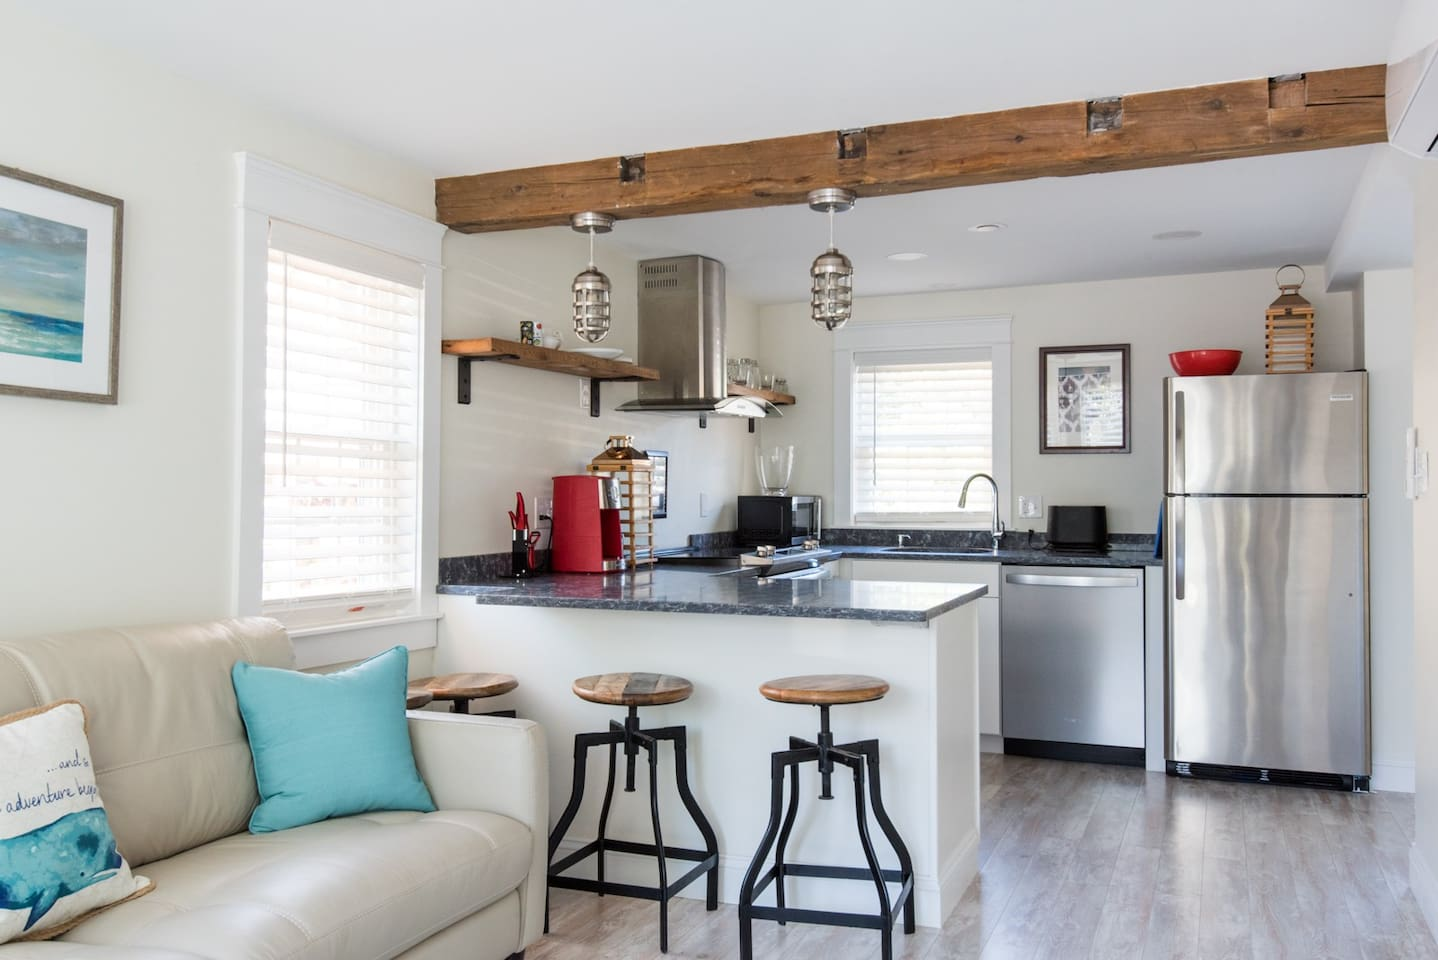 """Rustic sophistication says it all at Kennebunk Coastal Suites #3 unit """" Coveside Suite""""! Original beams add to the overall charm and uniqueness of this suite.  This unit has plenty of room at the counter height bar area for eating & also a dining ta"""